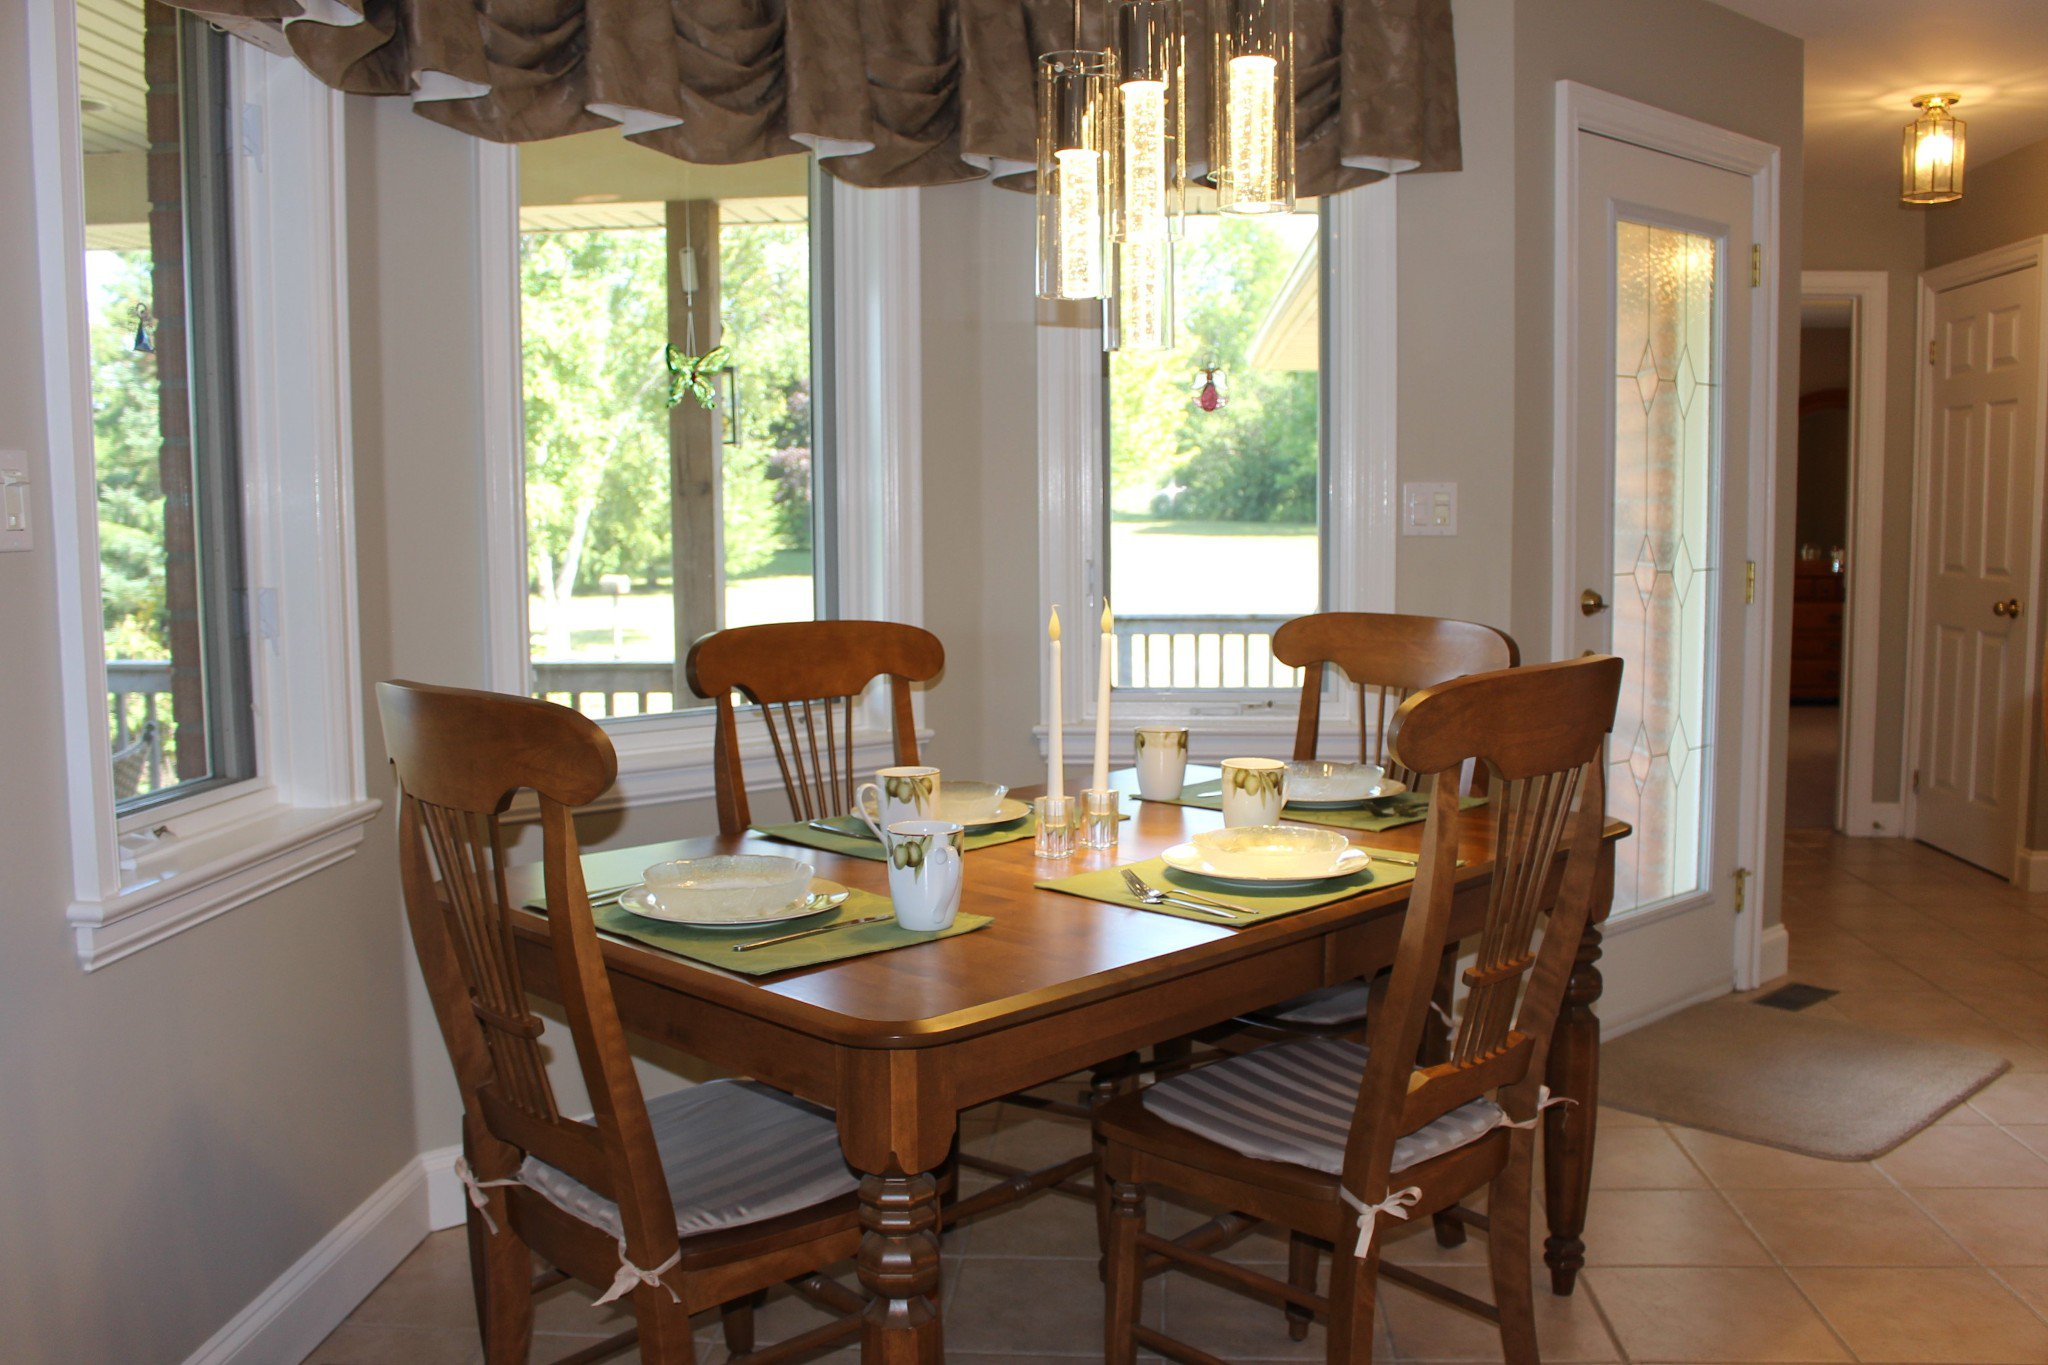 Photo 19: Photos: 159 Nawautin Drive in Grafton: Residential Detached for sale : MLS®# 40012652